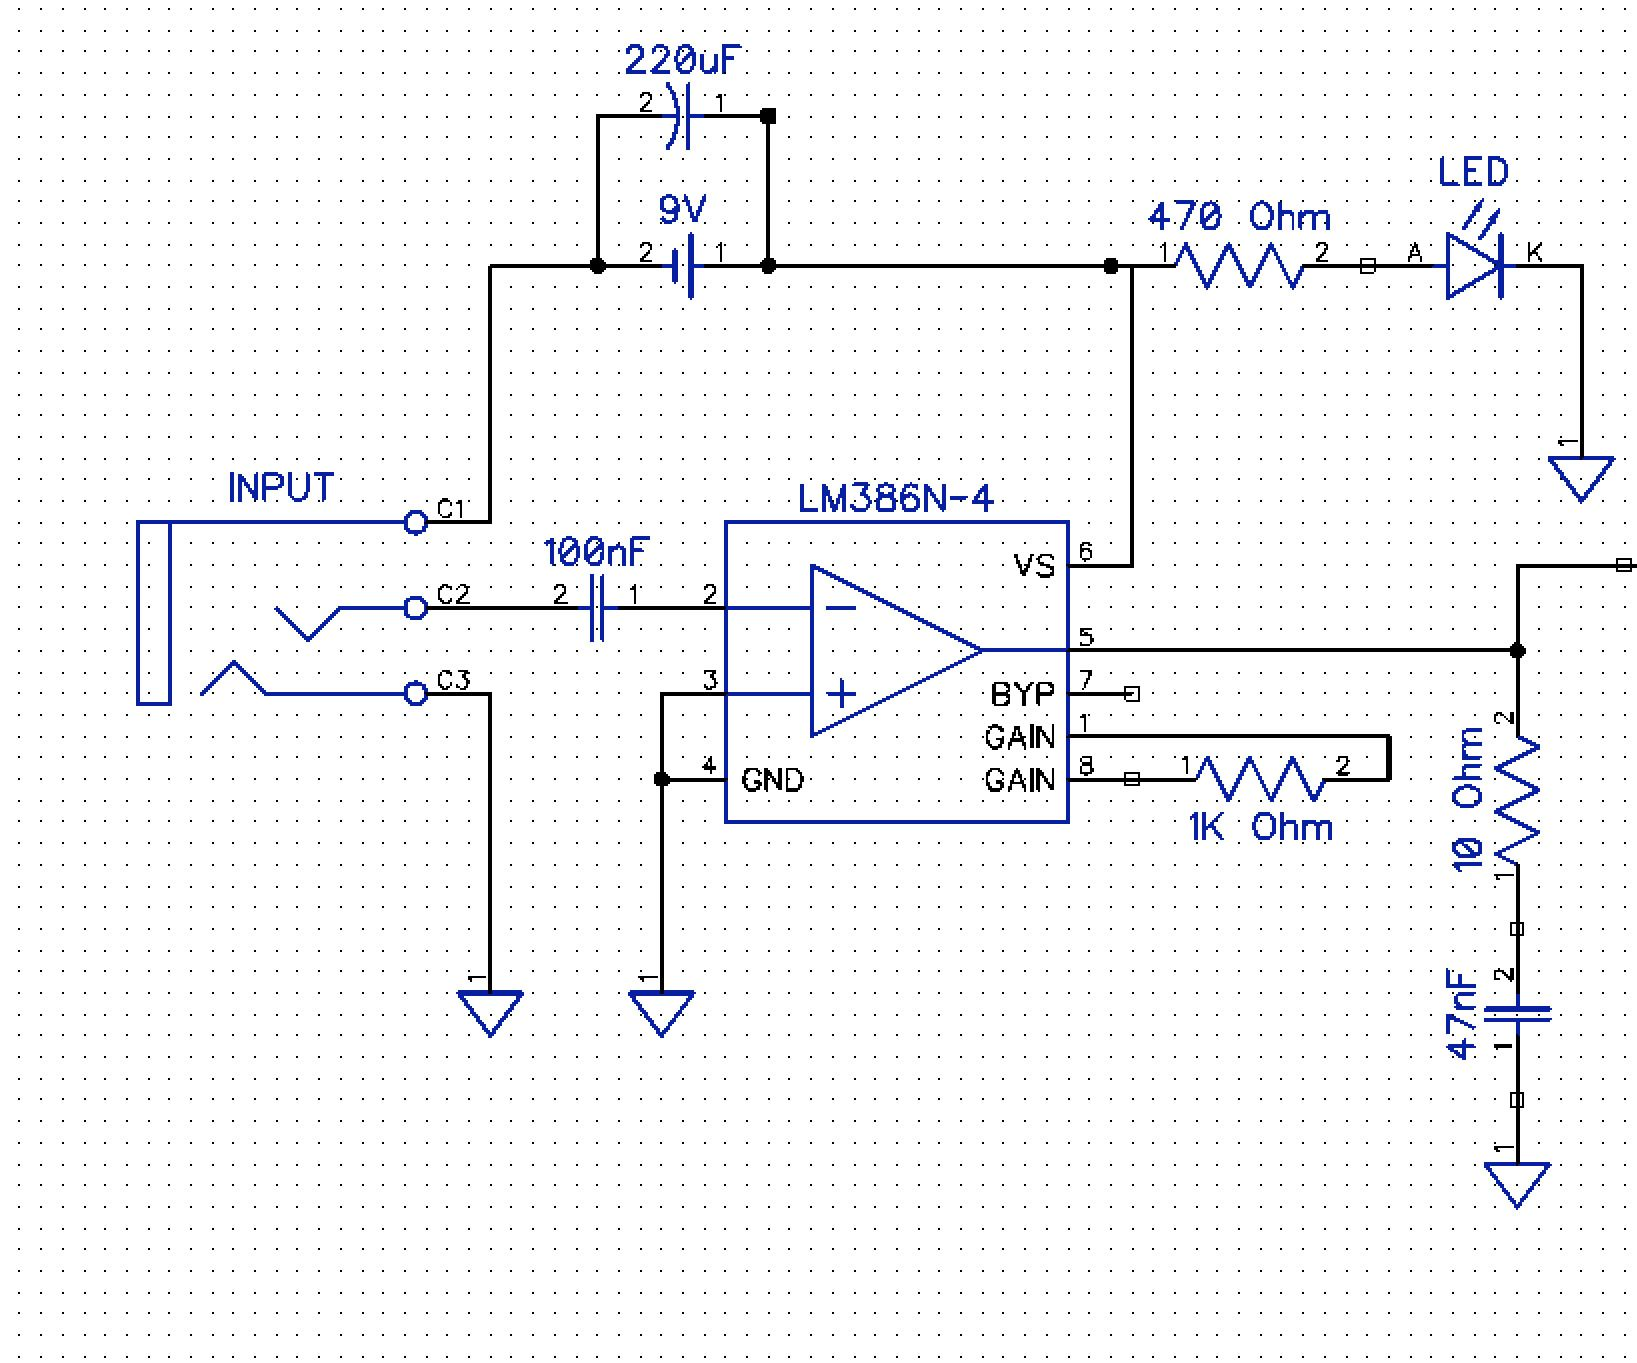 small resolution of from schematic to protoboard building a simple lm386 guitar amp on a dip protoboard